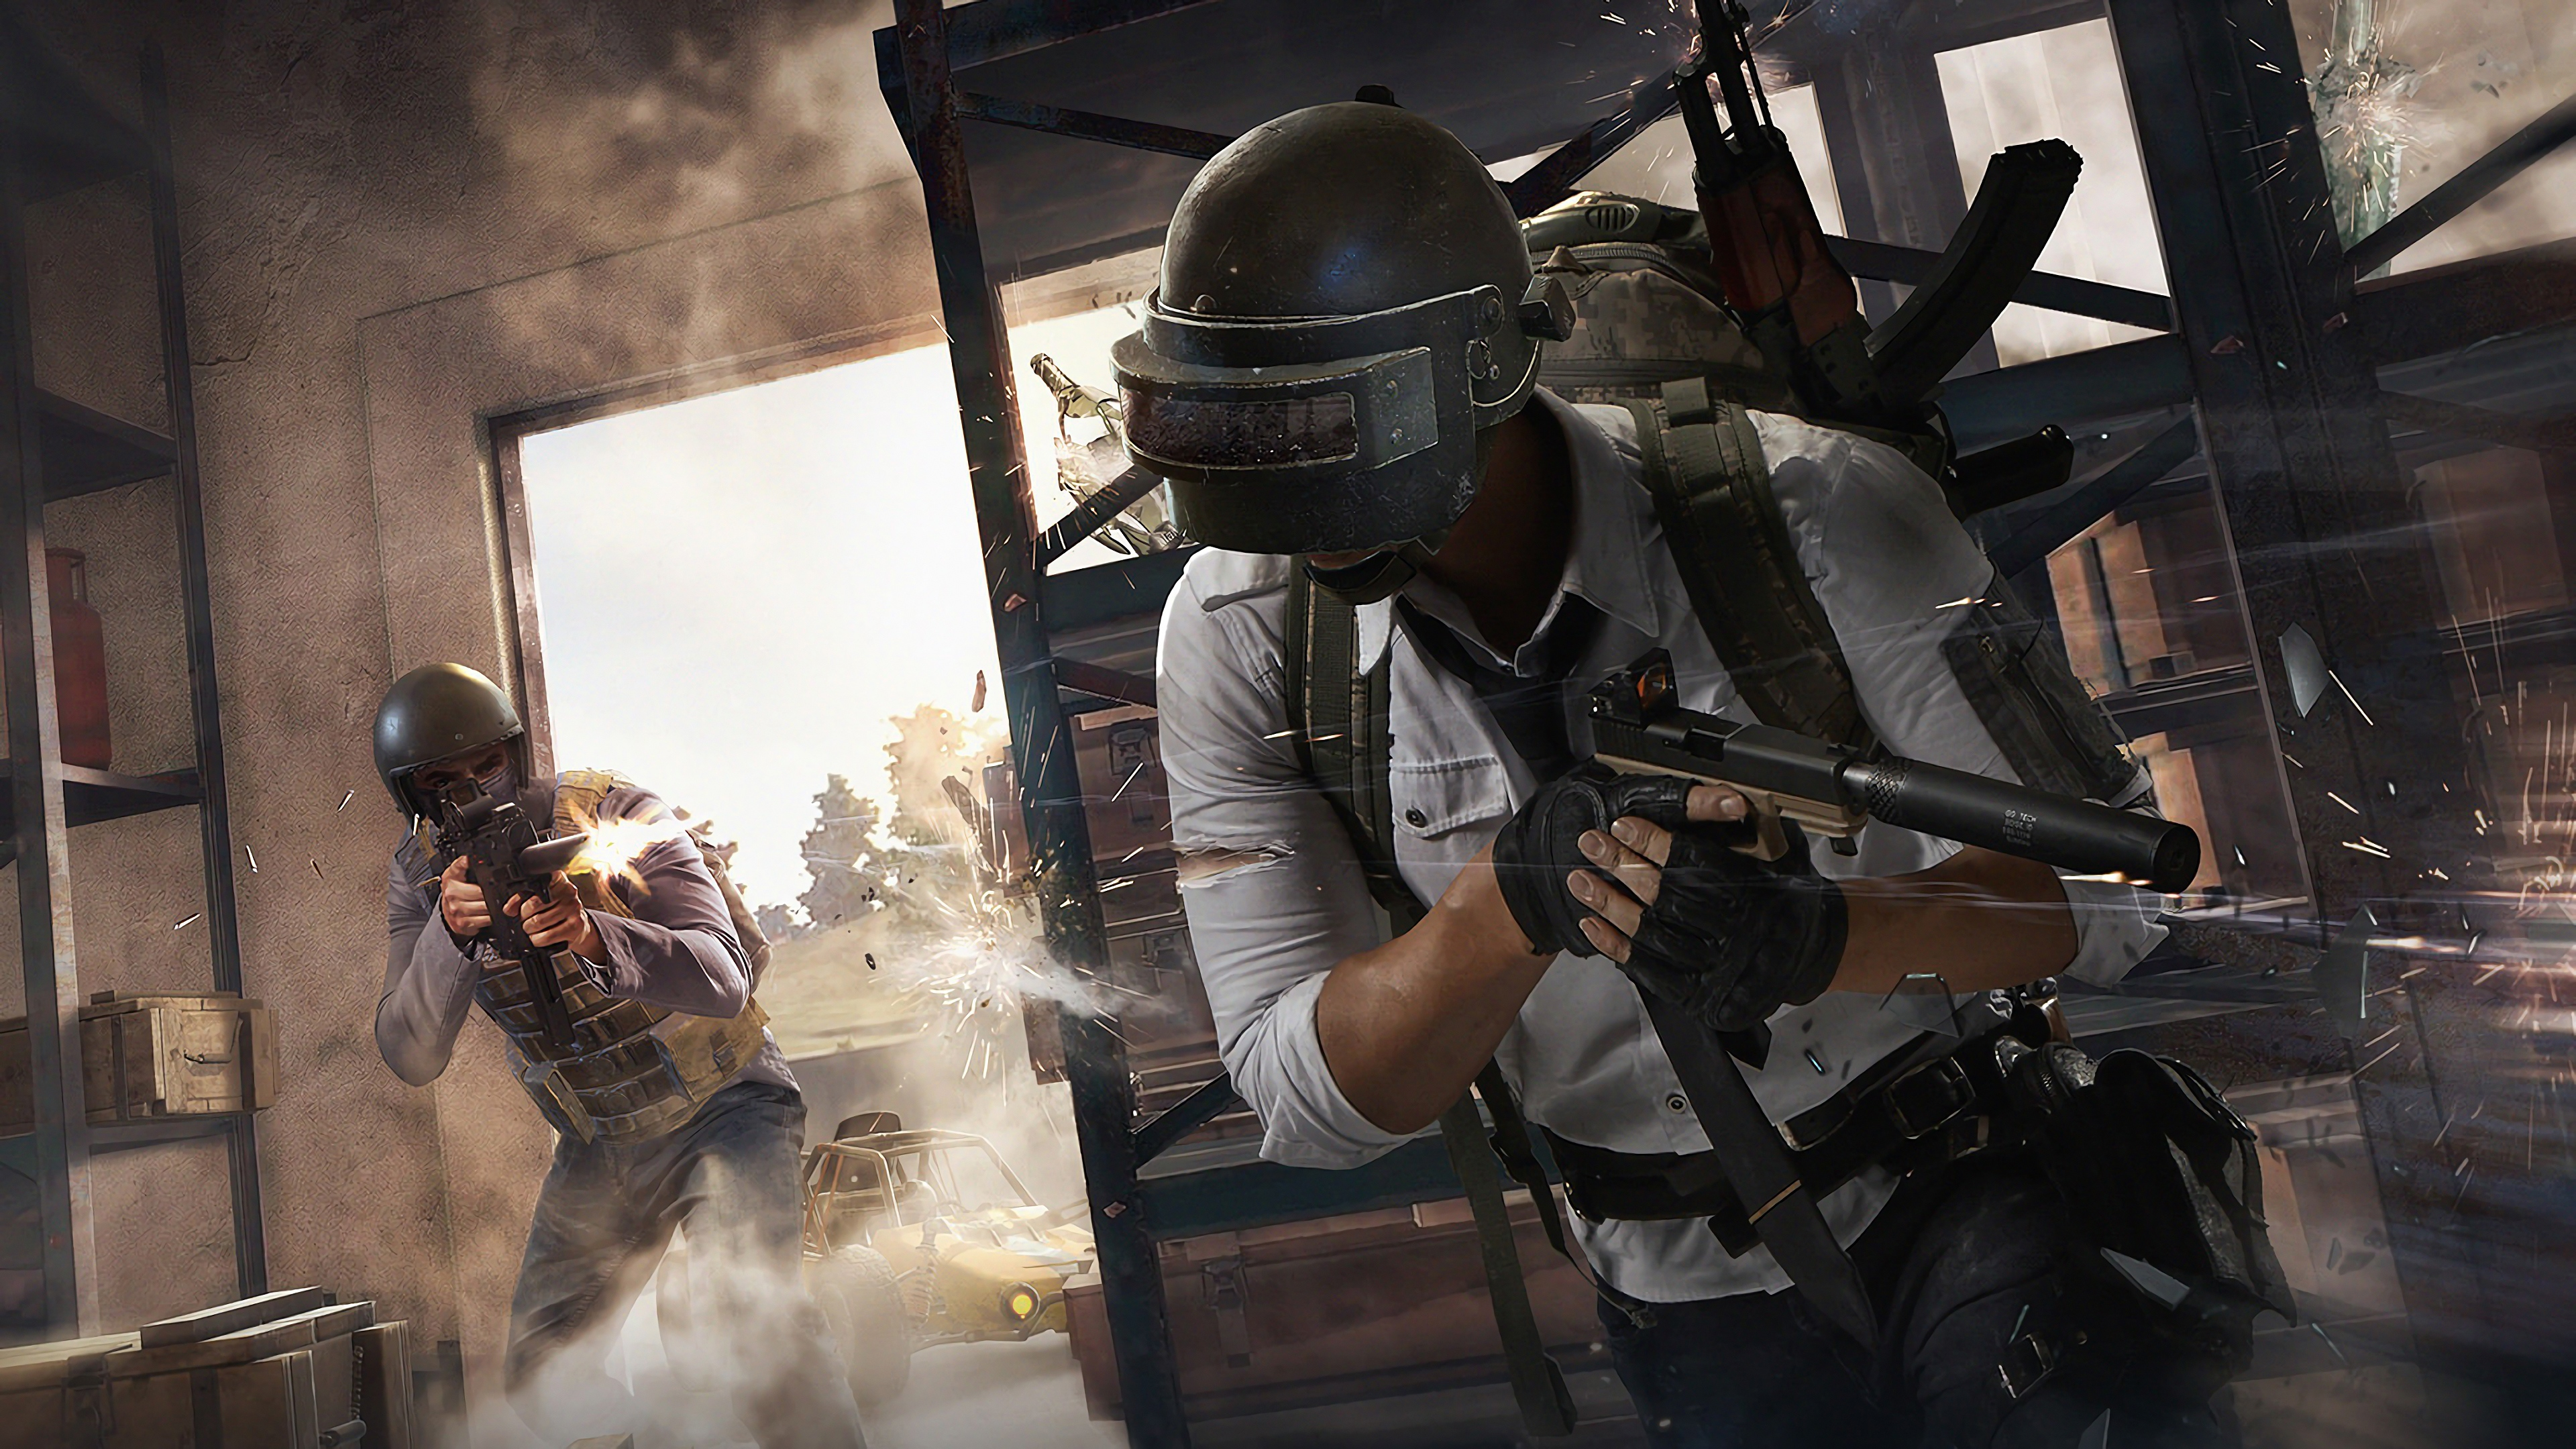 Pubg Wallpaper Hd Pic: 1440x900 PUBG Helmet Guy 2018 4k 1440x900 Resolution HD 4k